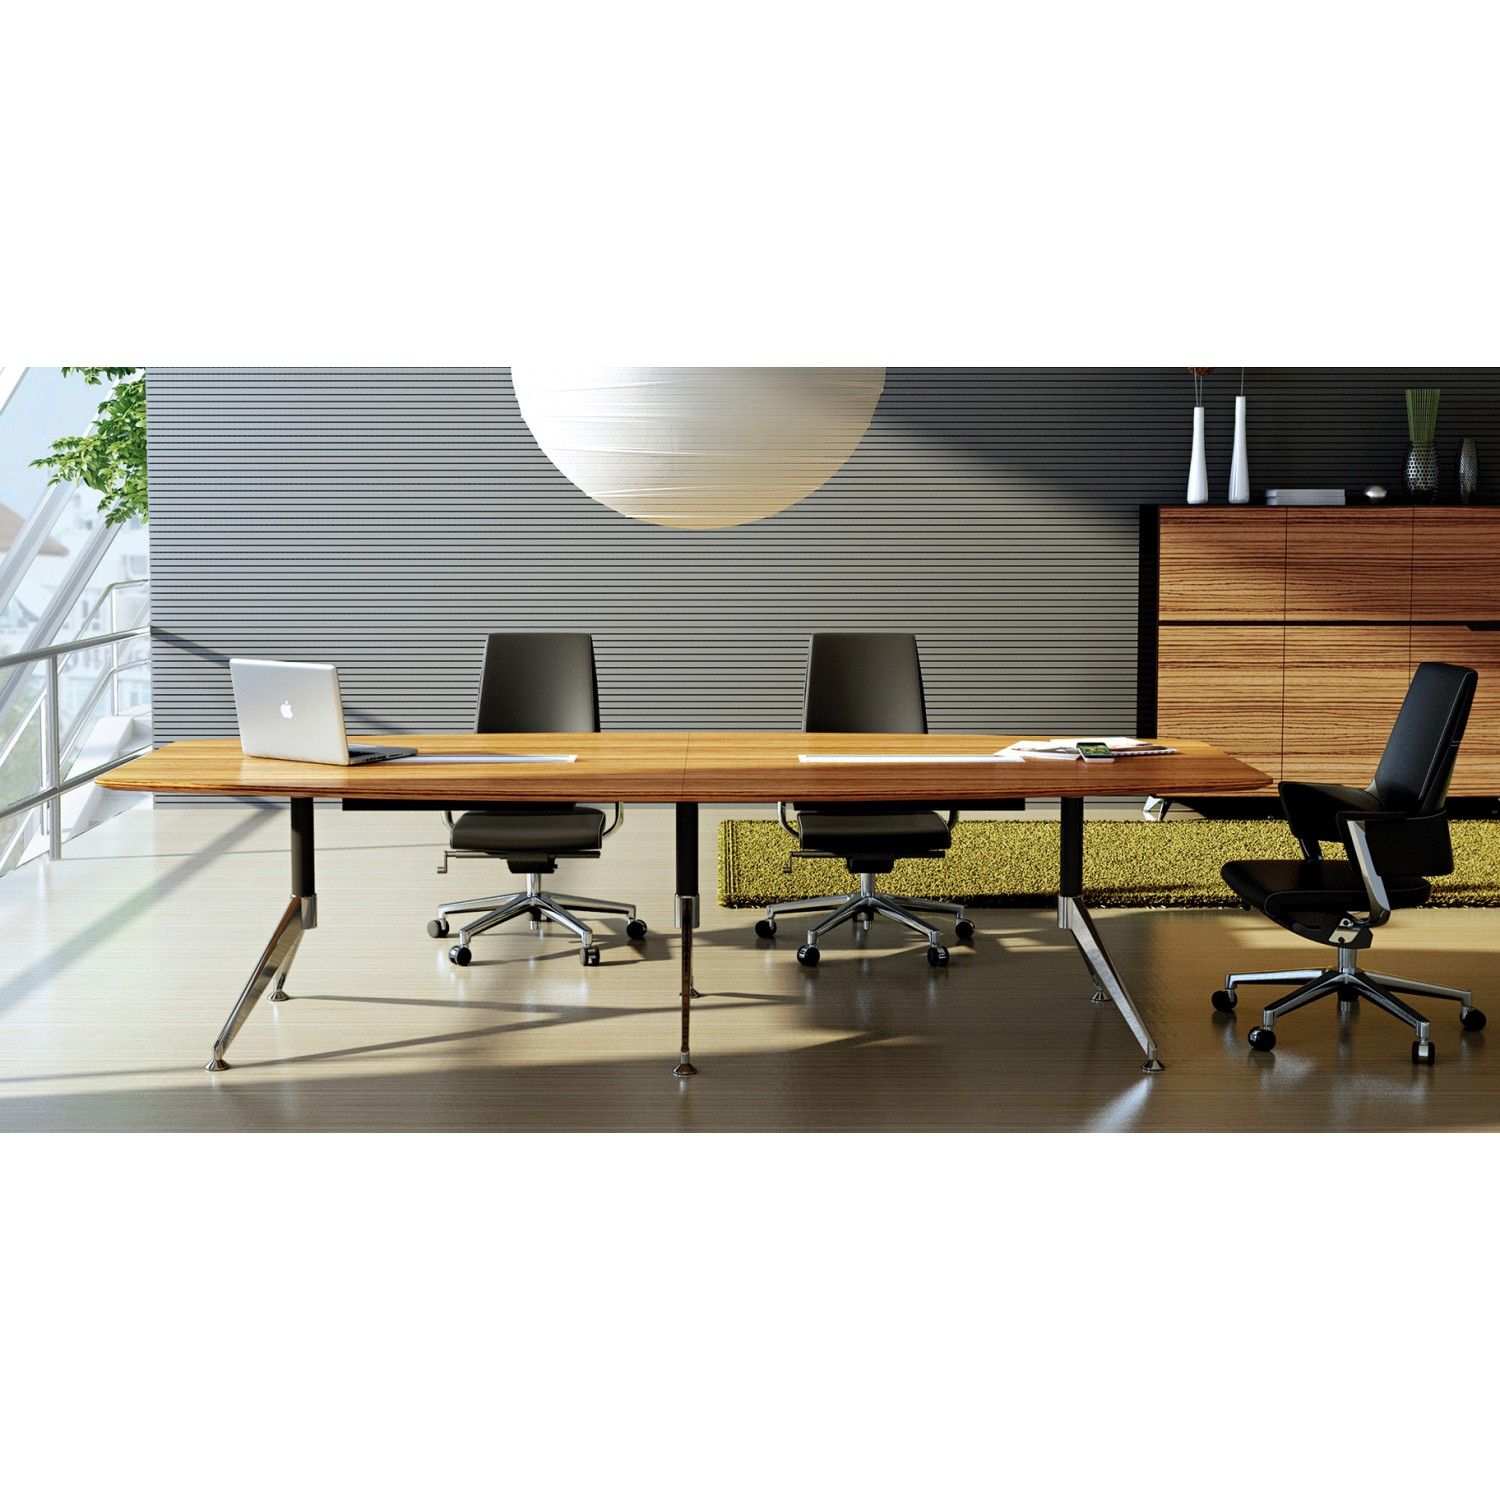 office chair under 3000 kids tv chairs urban nature boardroom conference table furniture